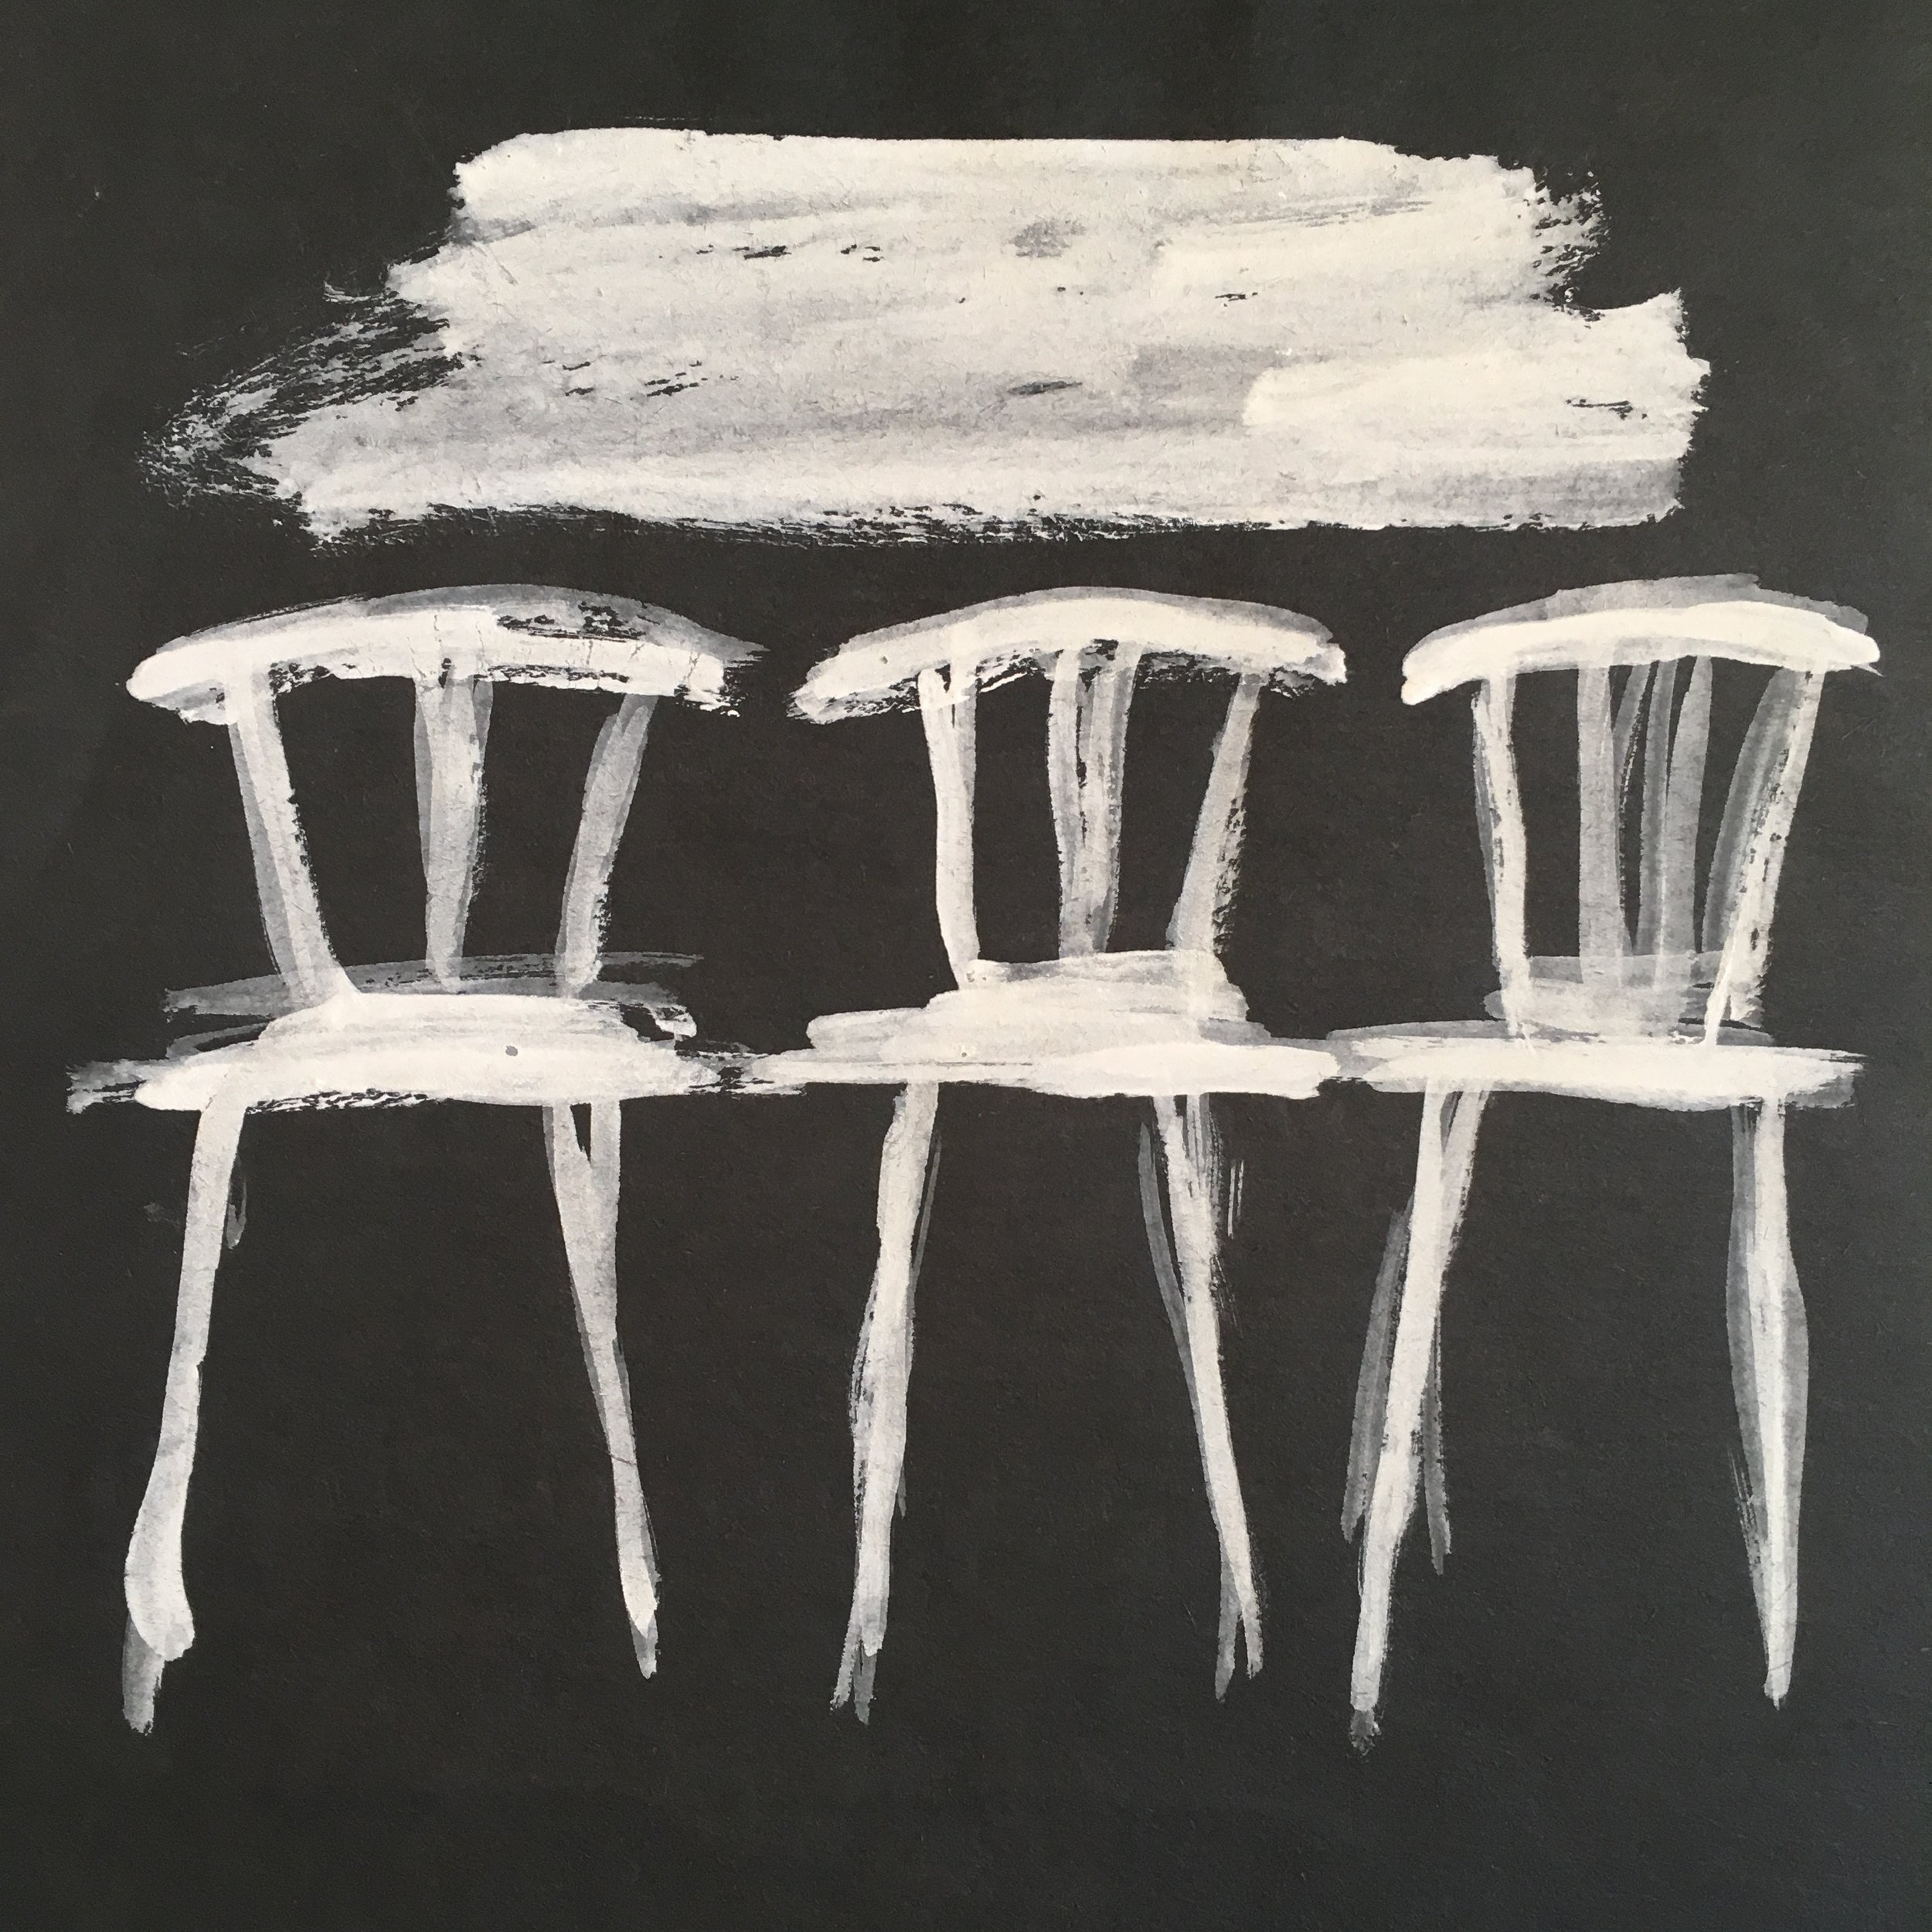 White Chairs , ca. 1980. Acrylic on paper, 9 x9 in. (23 x 23 cm.)